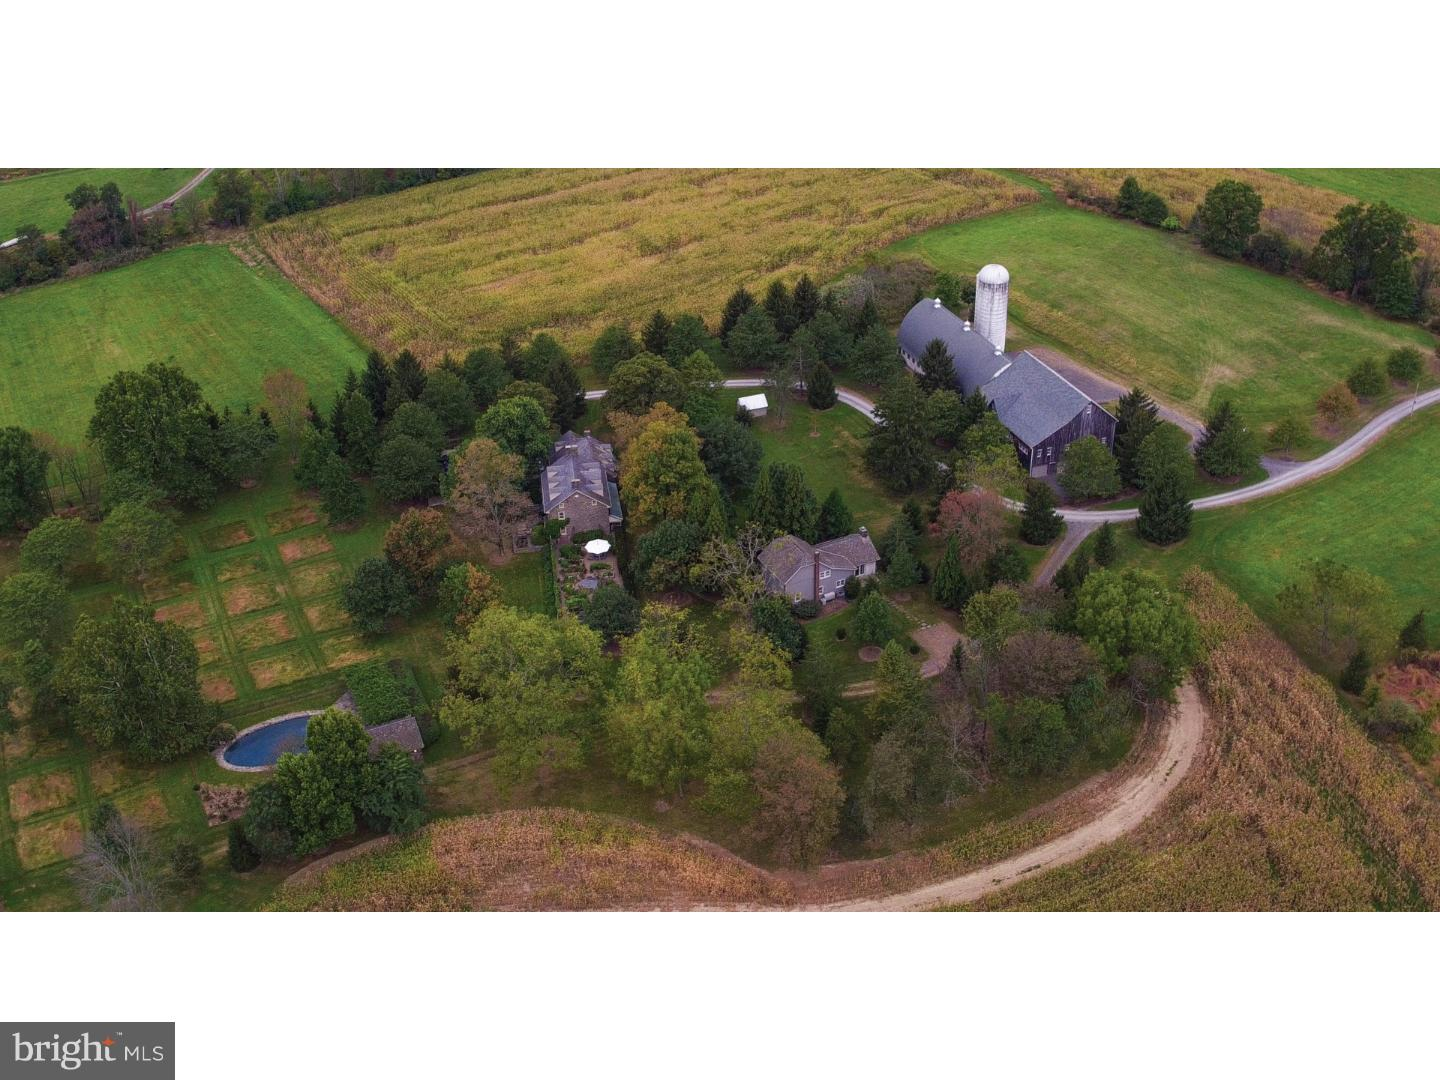 Single Family Home for Sale at 7248 GROVELAND Road Pipersville, Pennsylvania 18947 United States